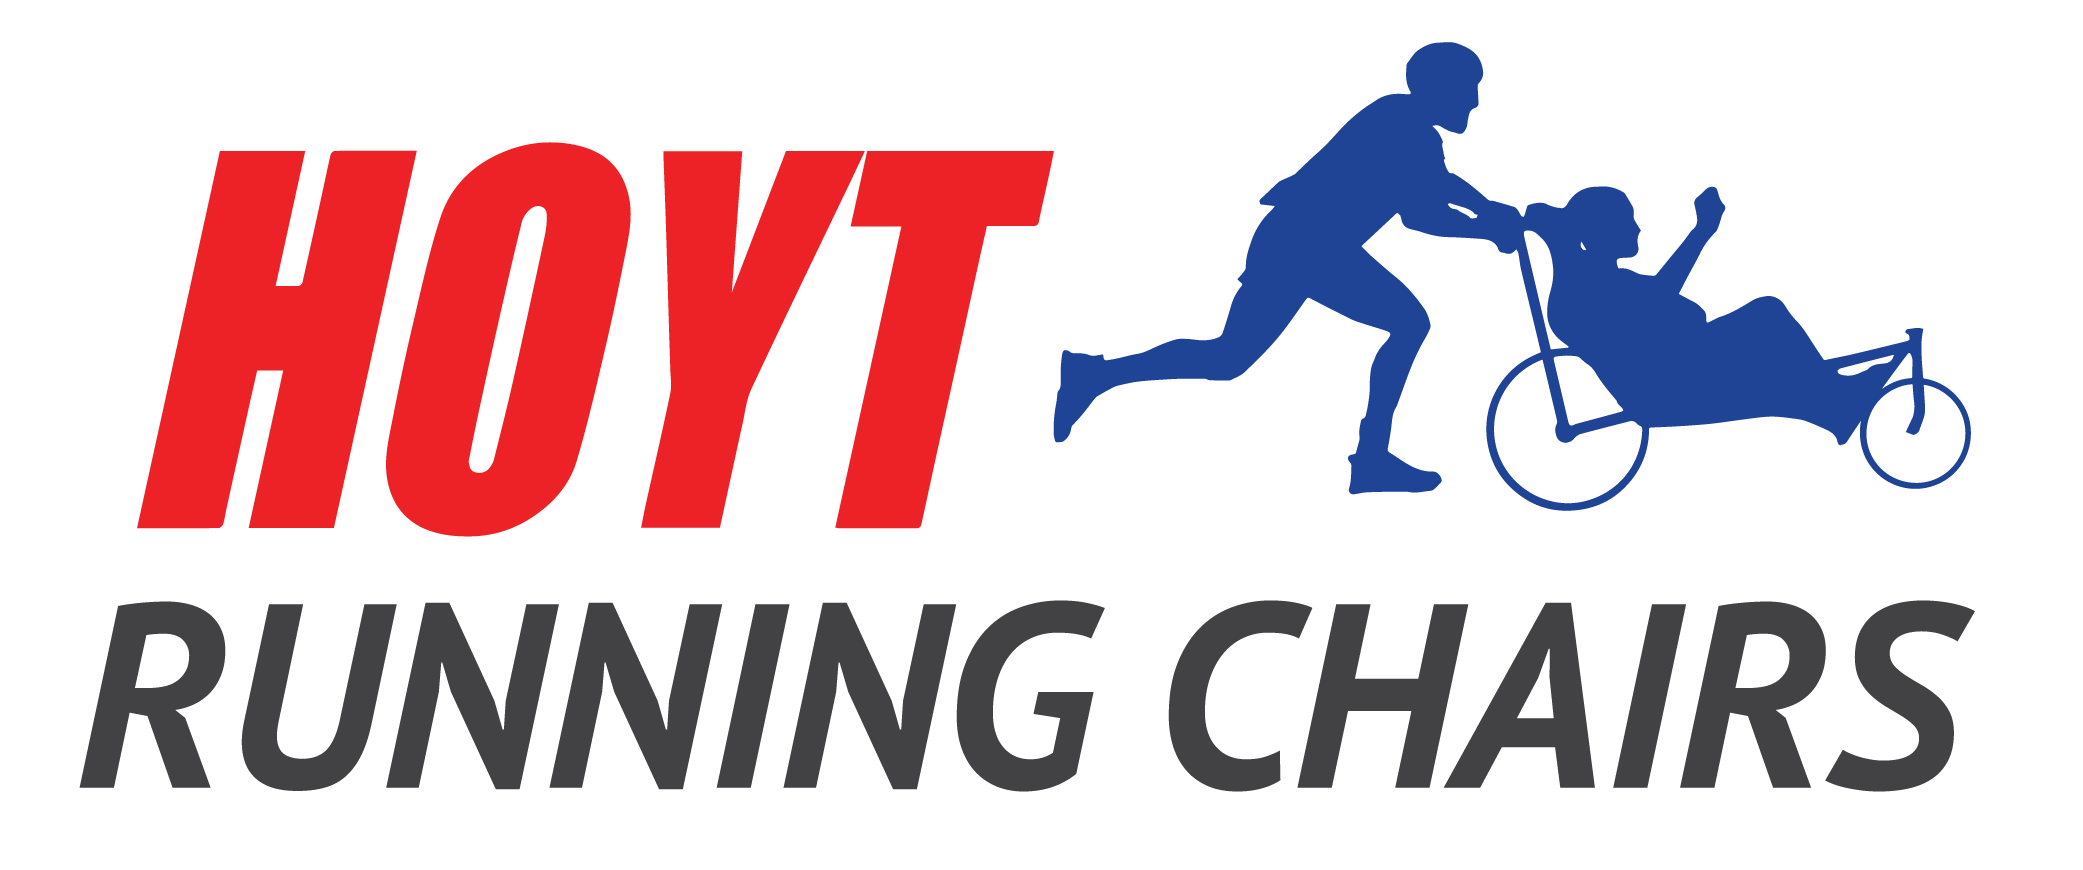 Sponsor Hoyt Running Chairs